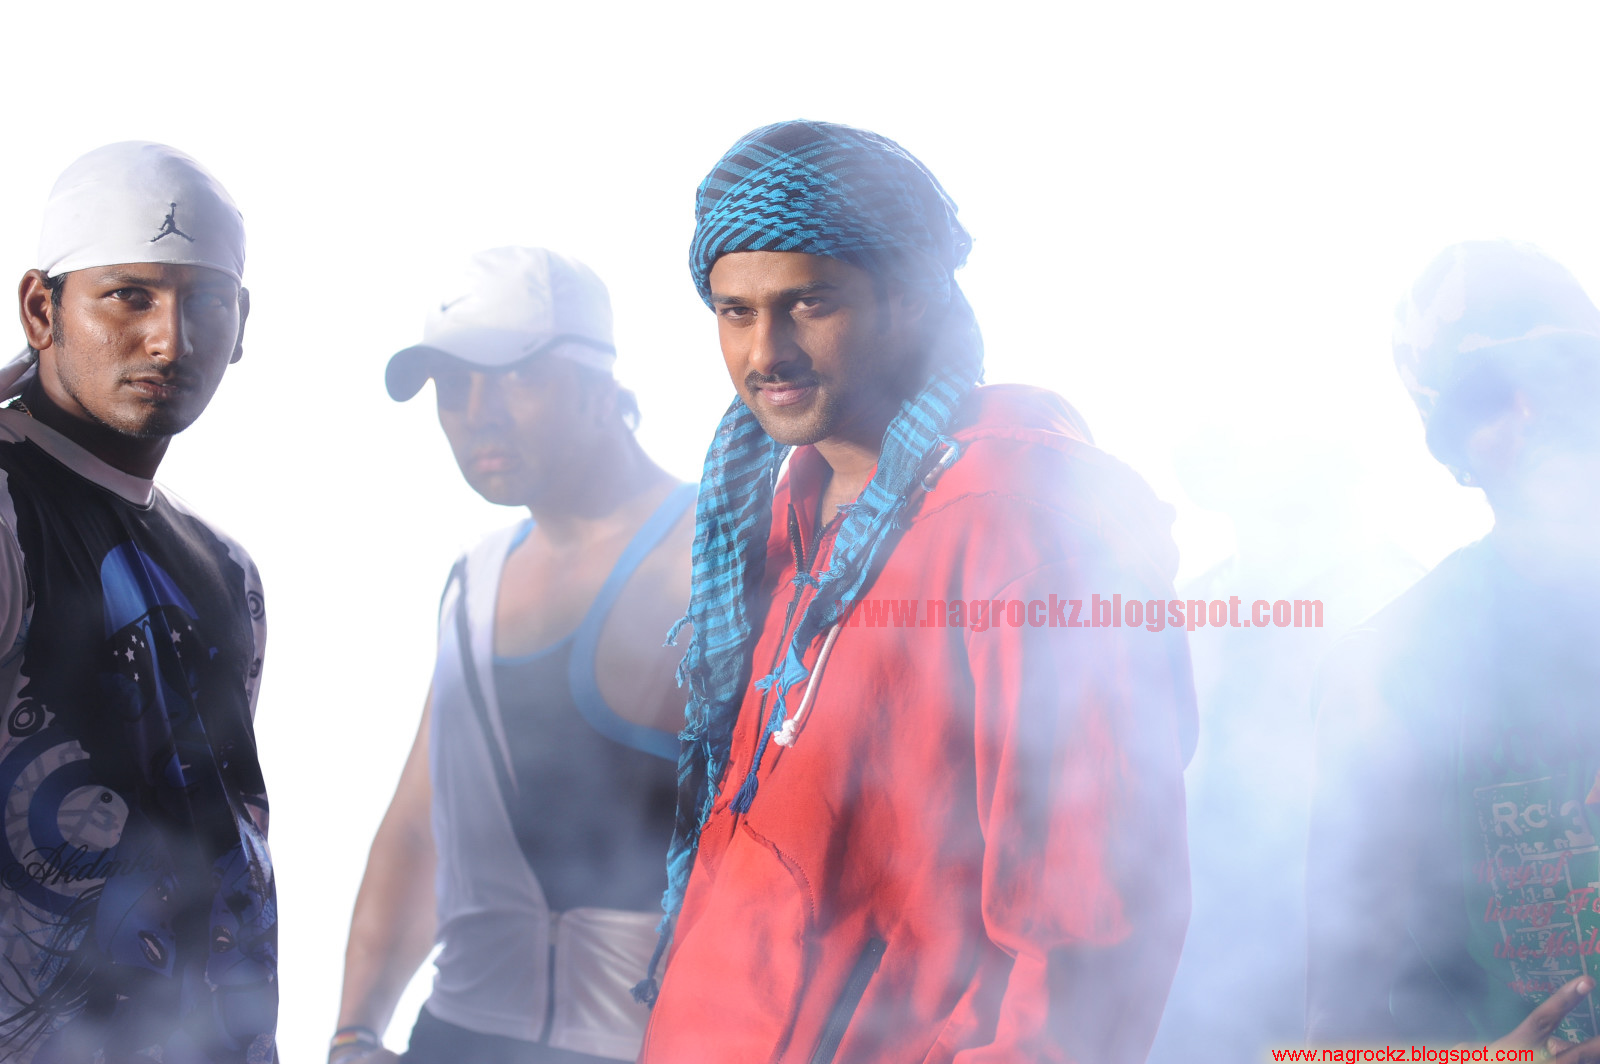 download free mp3 songs and wallpapers tollywood bollywood